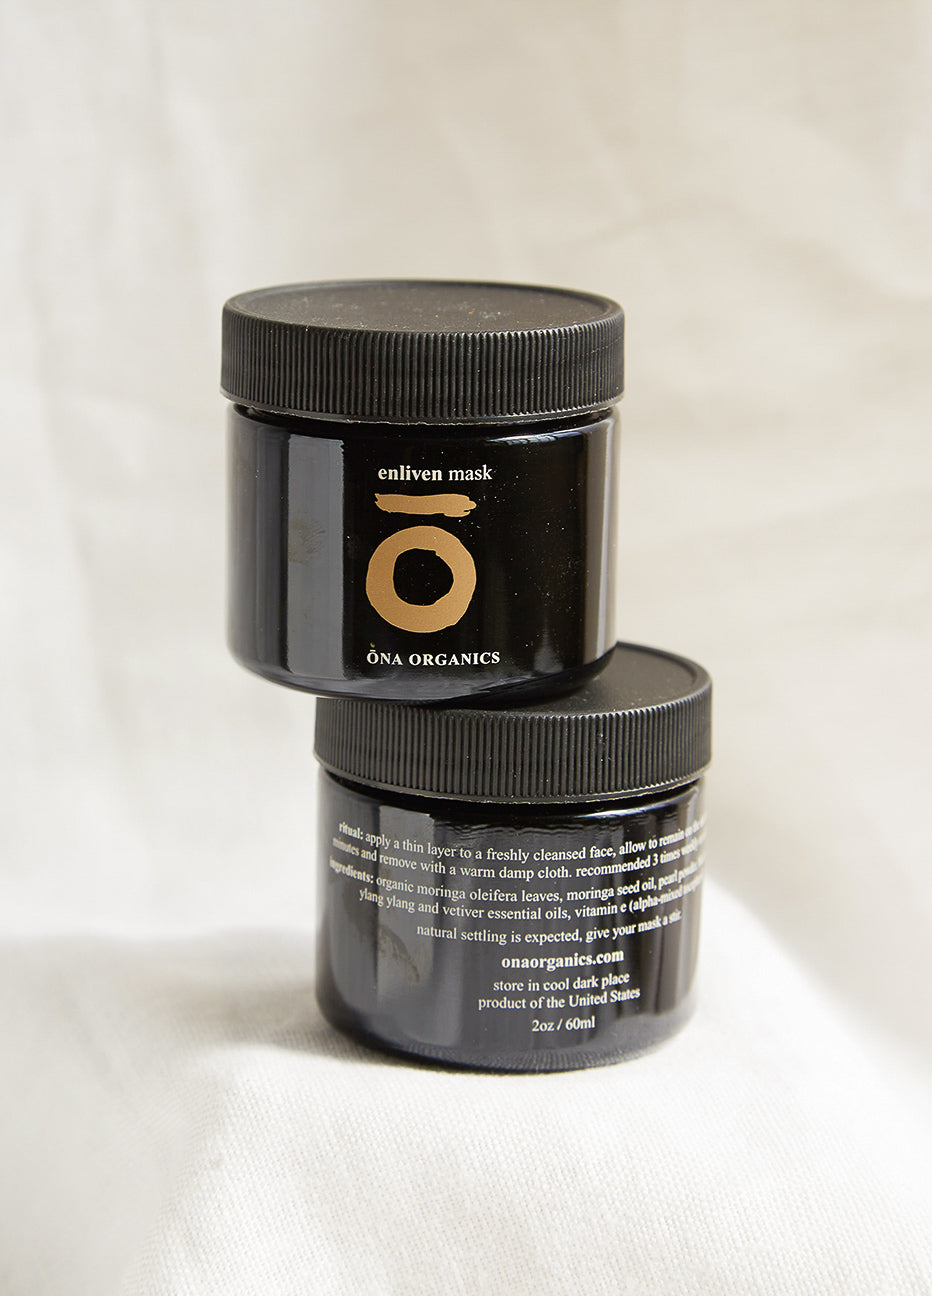 Ona Organics Enliven Mask